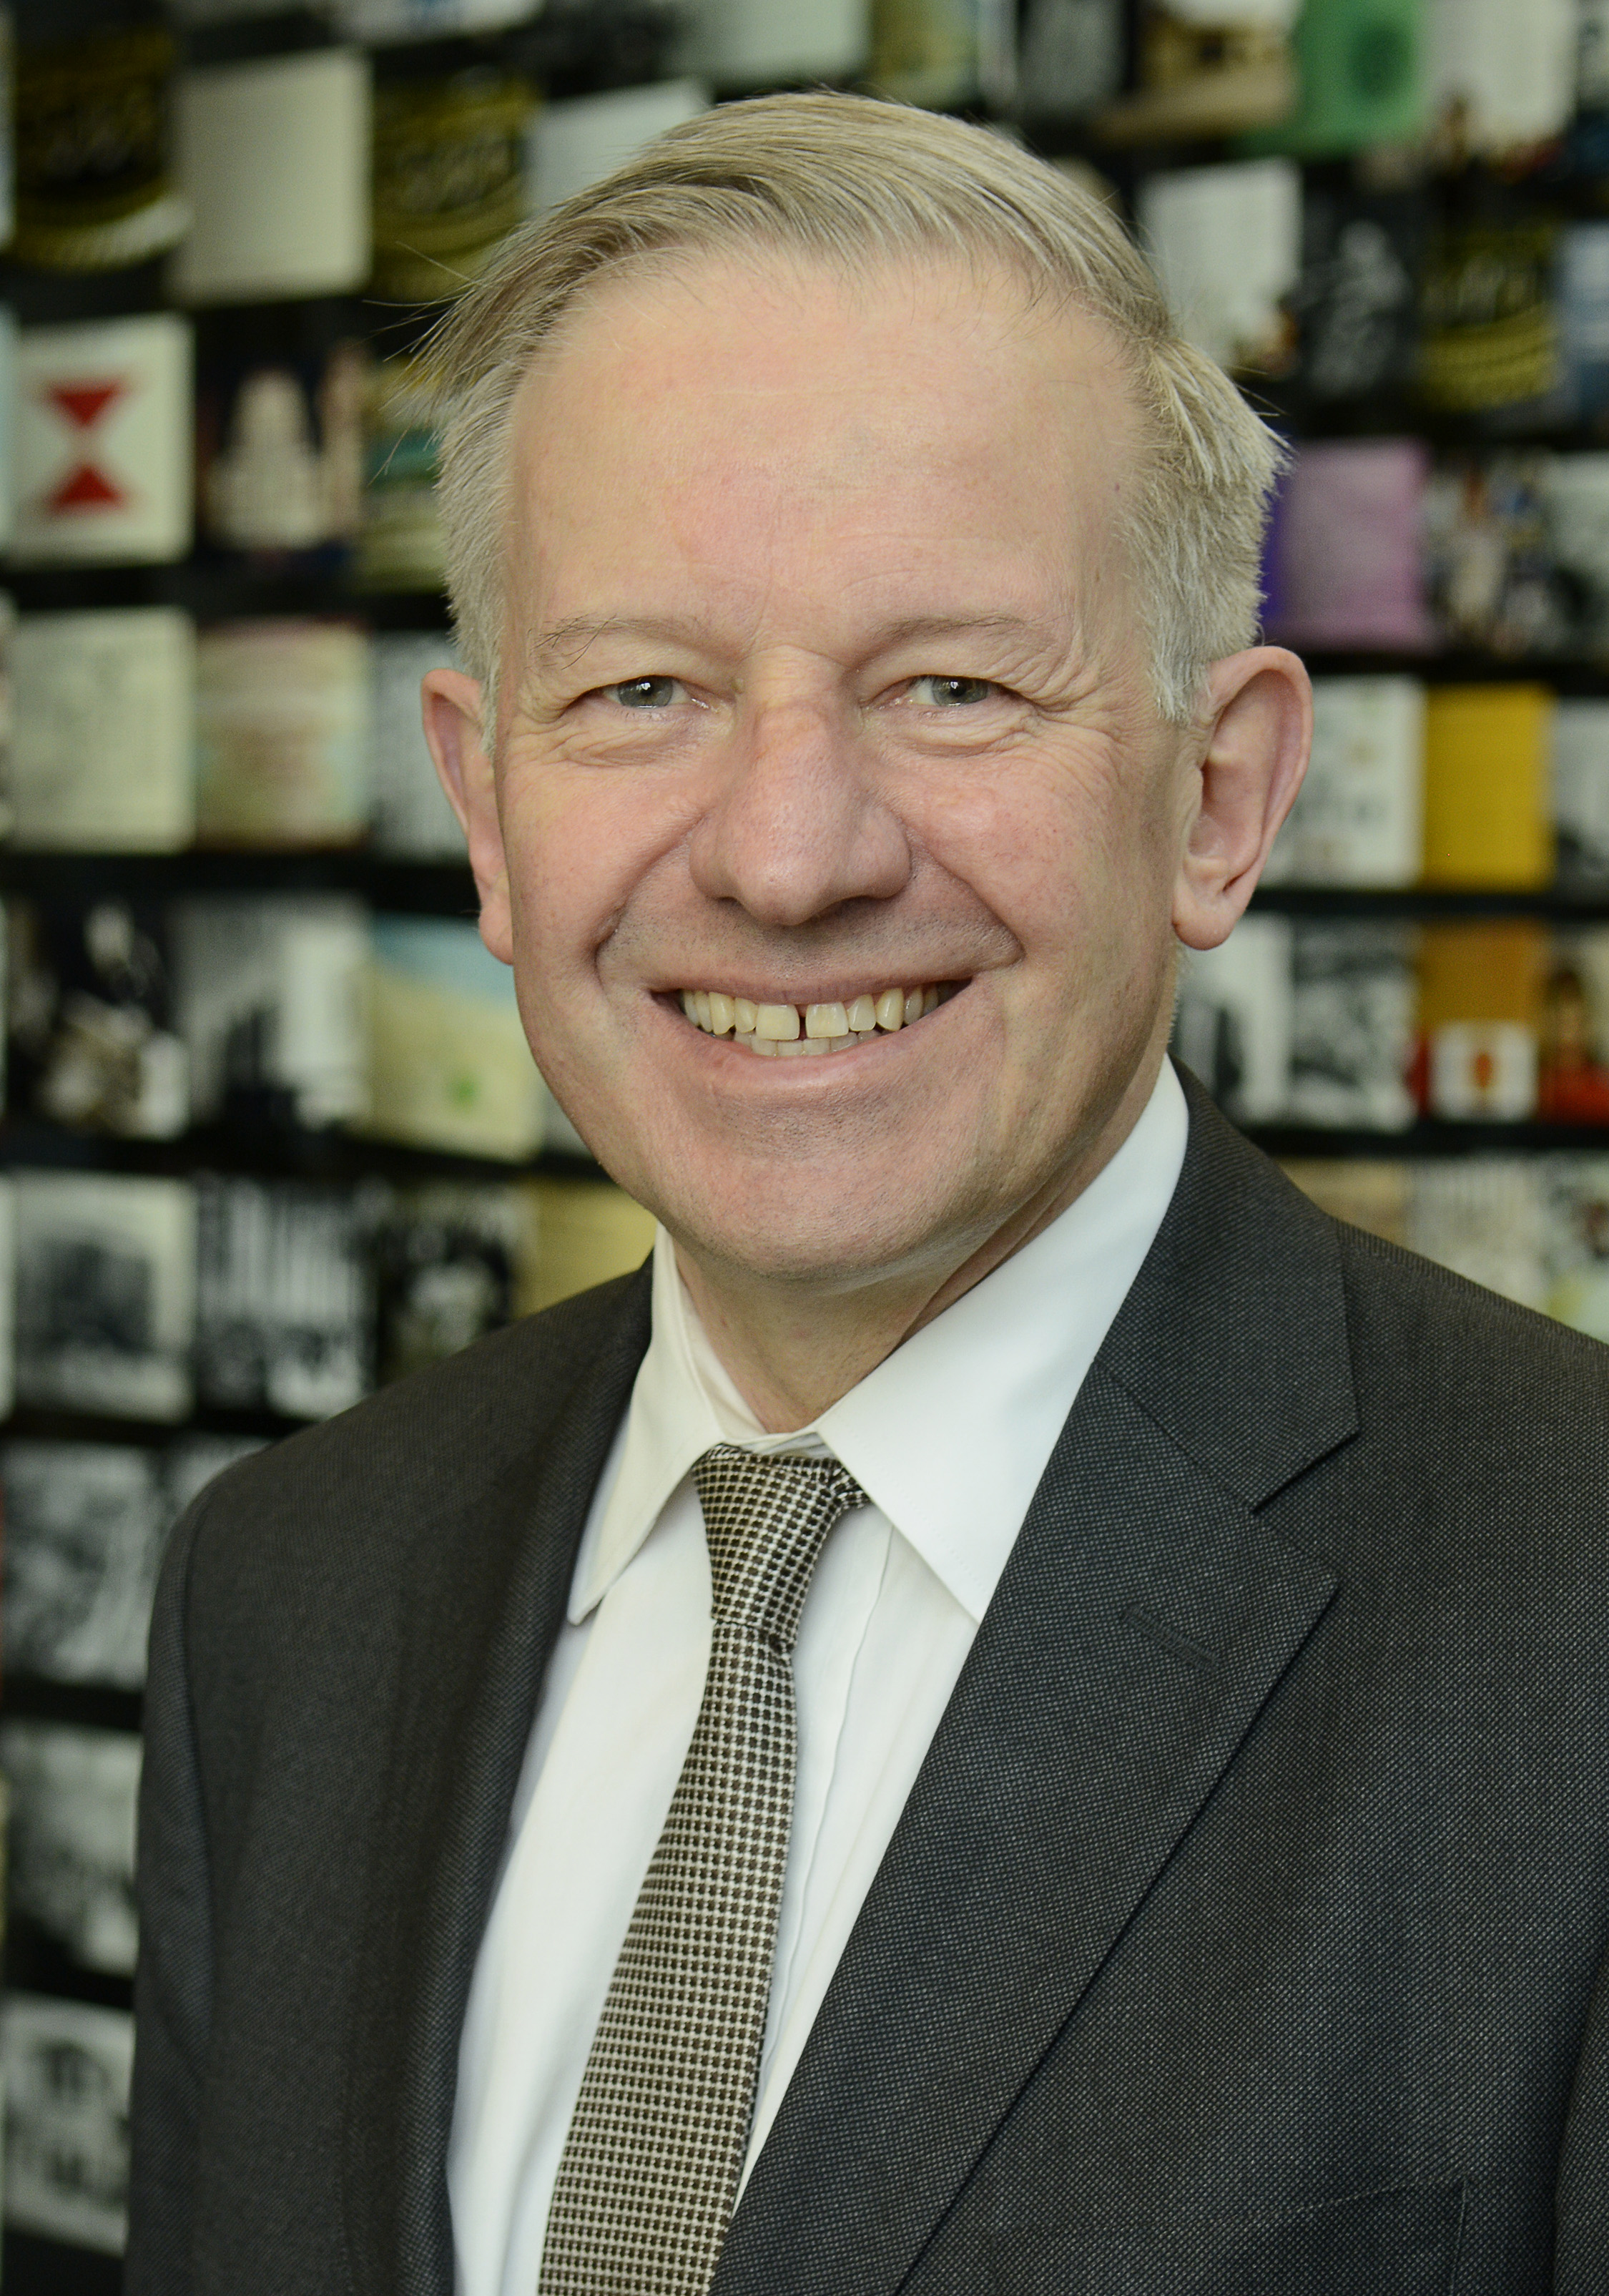 Sir Sherard Cowper-Coles KCMG LVO - Group Head of Public Affairs, HSBC Holdings plc